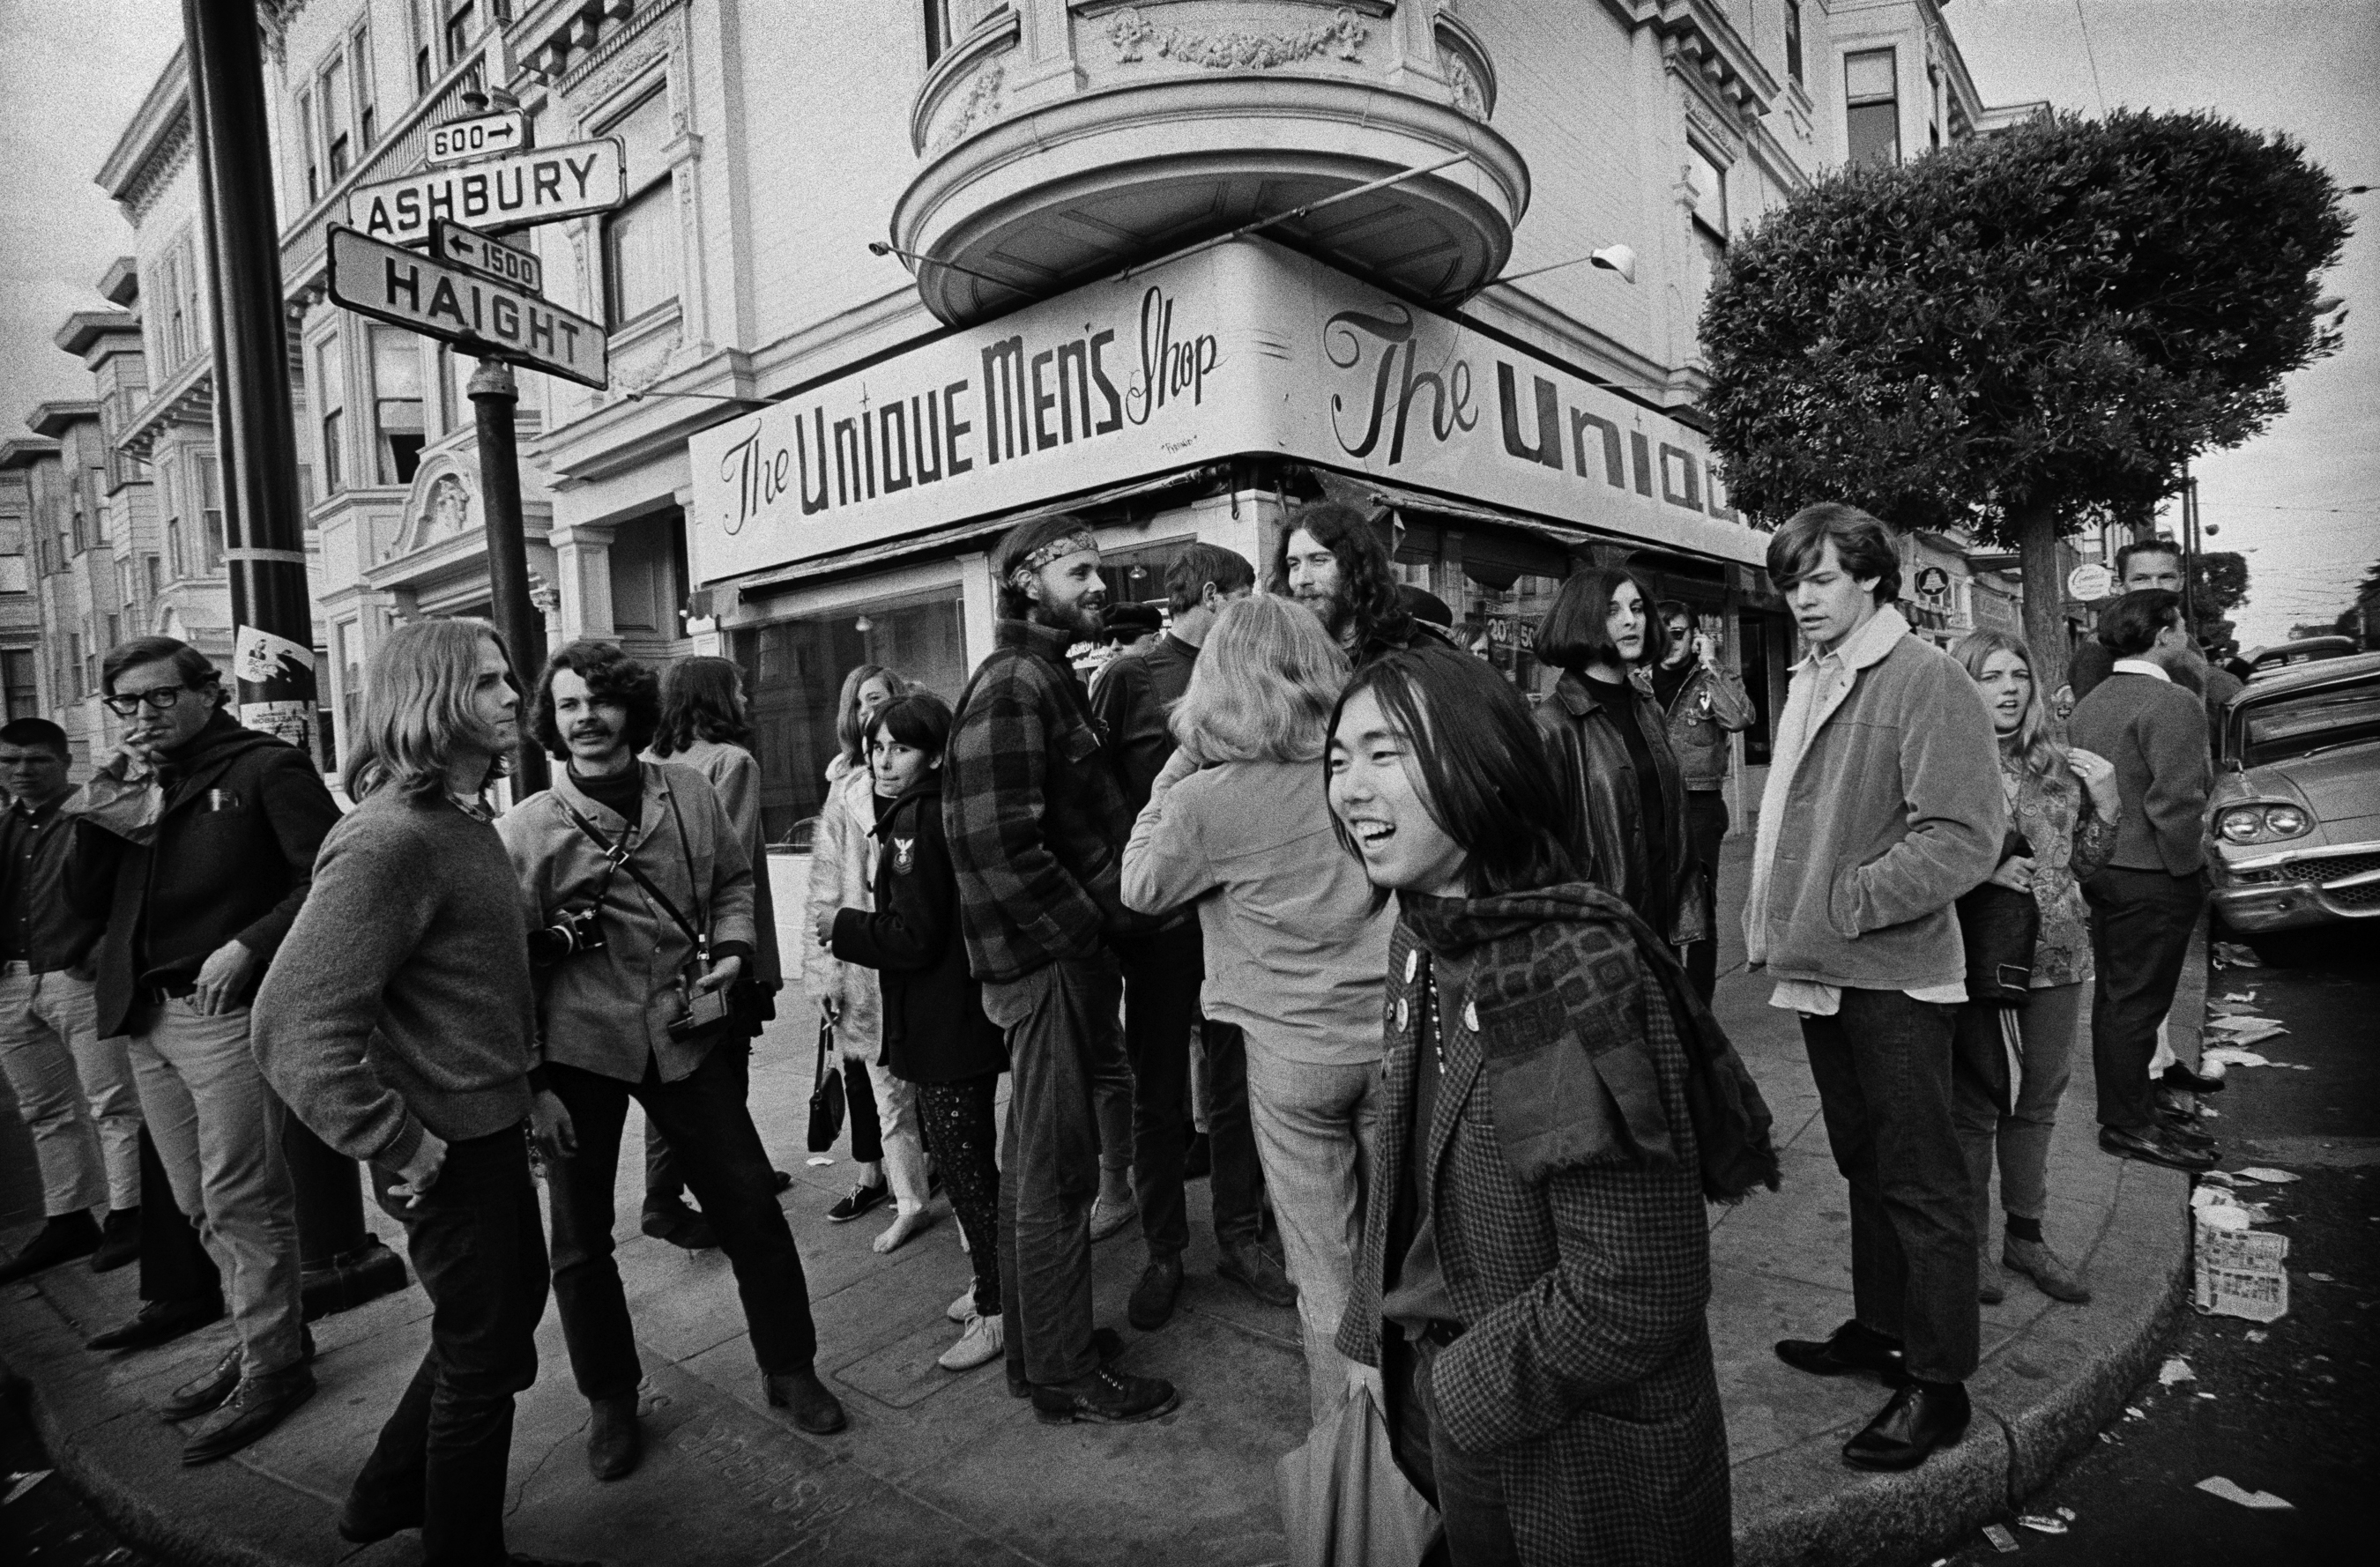 importance of haight ashbury san francisco in shaping the music of 1960s